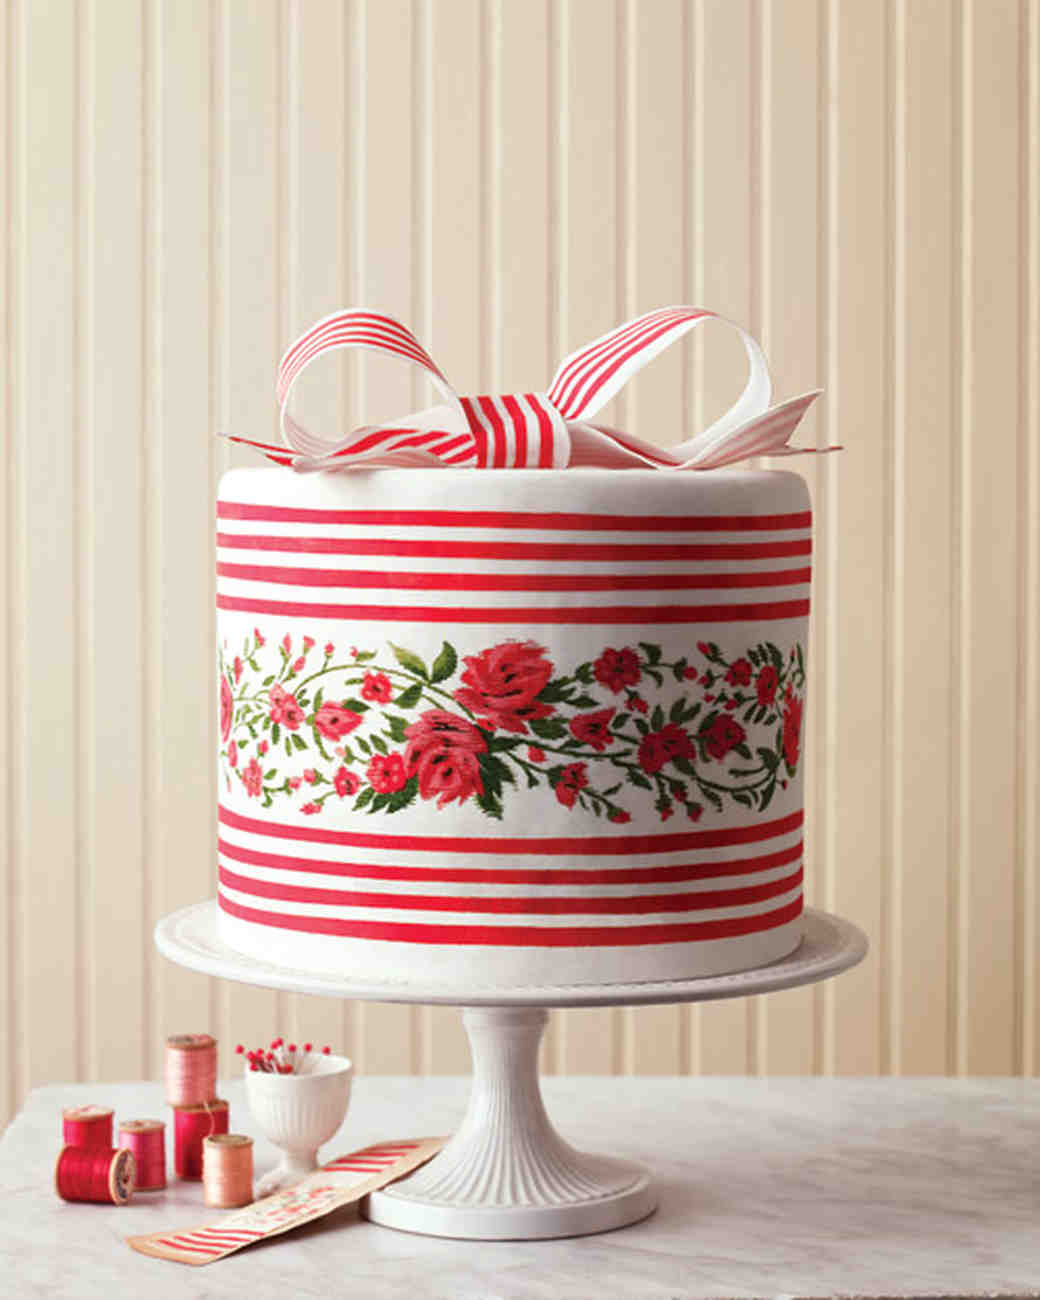 5-Layered Red Velvet Cake